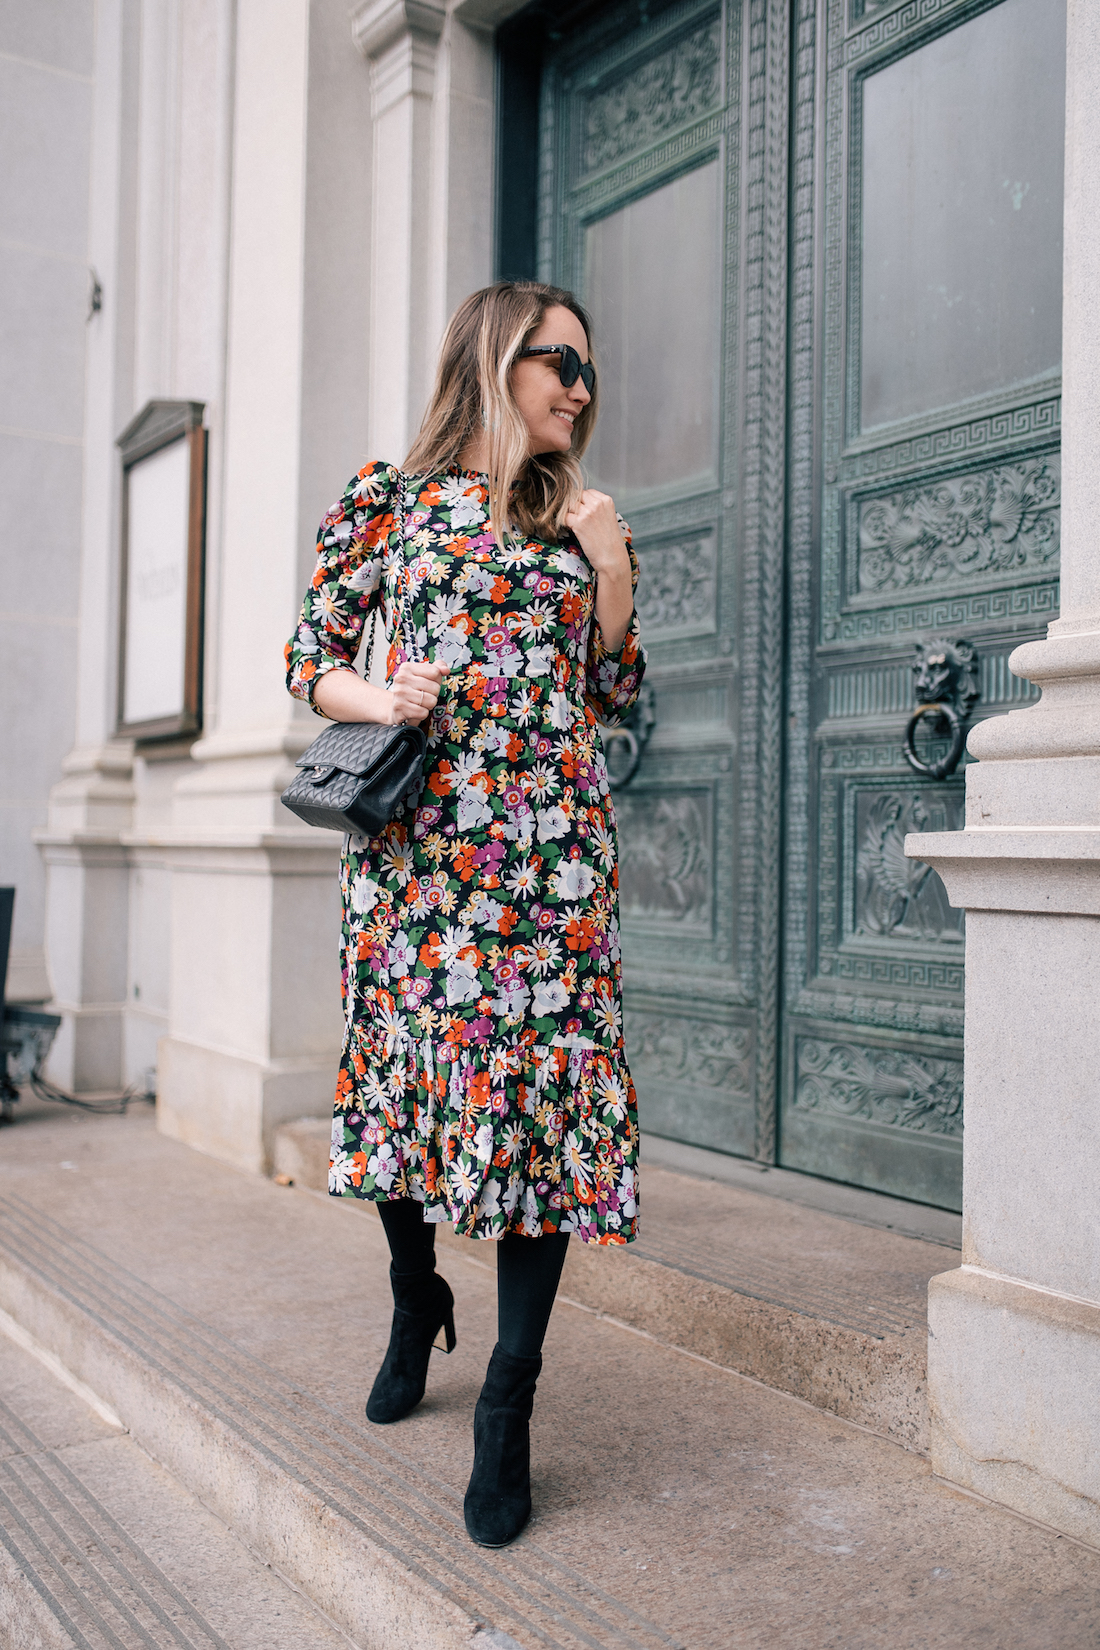 Outfit Details: L. K. Bennett Dress (gifted) // Express Tights// Marion Parke Boots // Chanel Bag // Polaroid Sunglasses